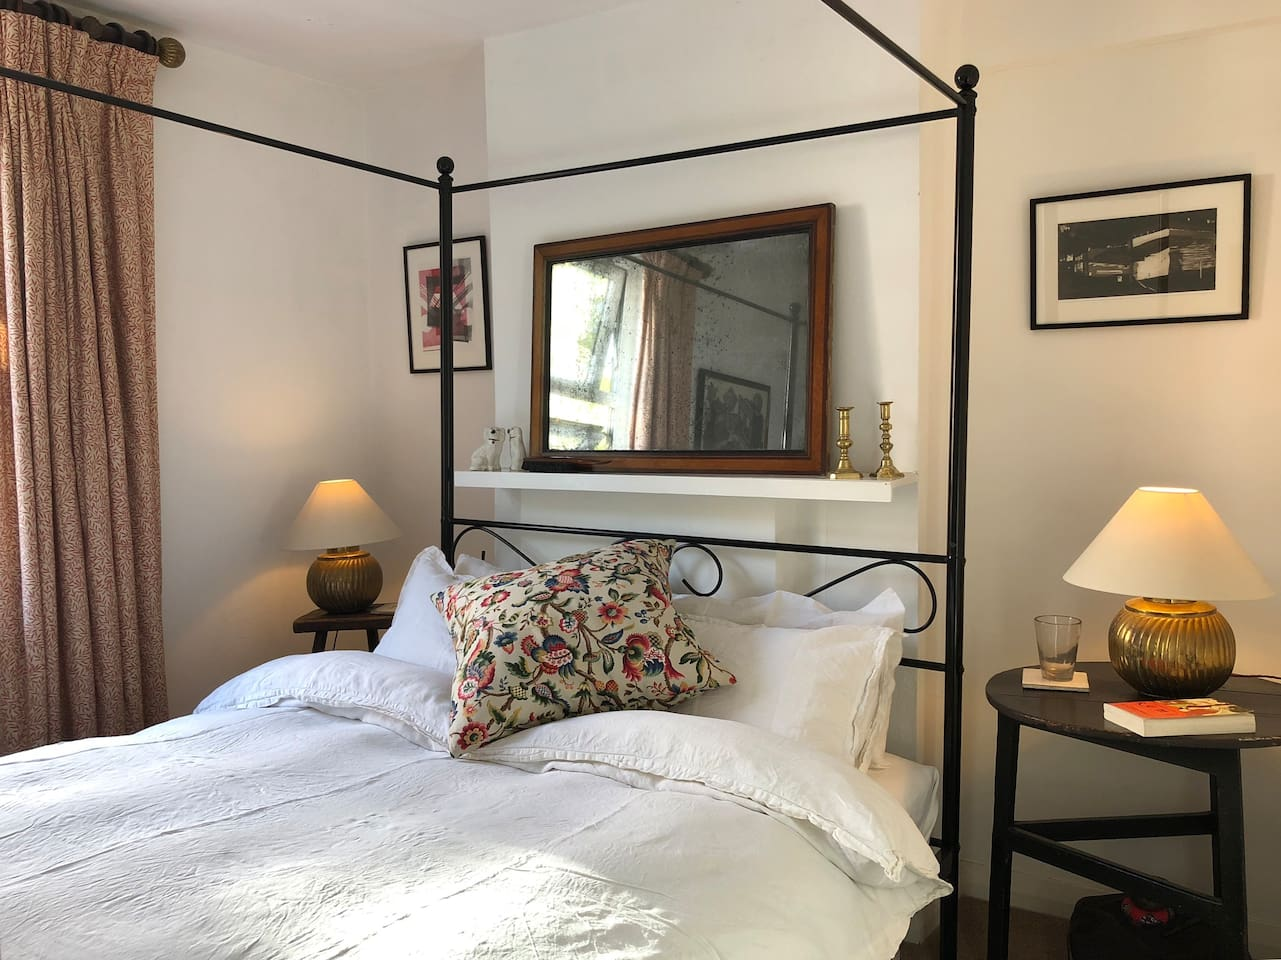 Bedroom Upstairs with Period Furniture and William Morris Textiles